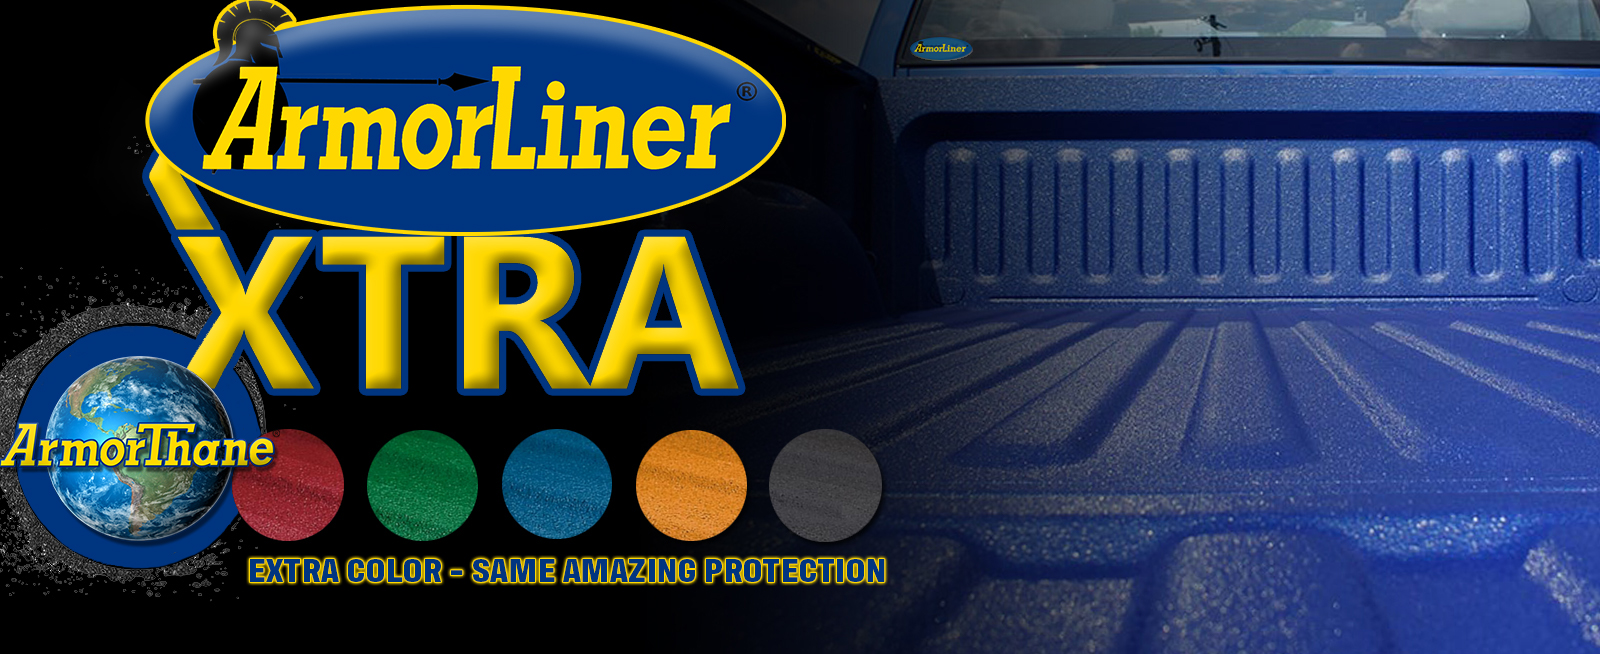 Make Your ArmorLiner Bedliner Stand Out Xtra With Color Match